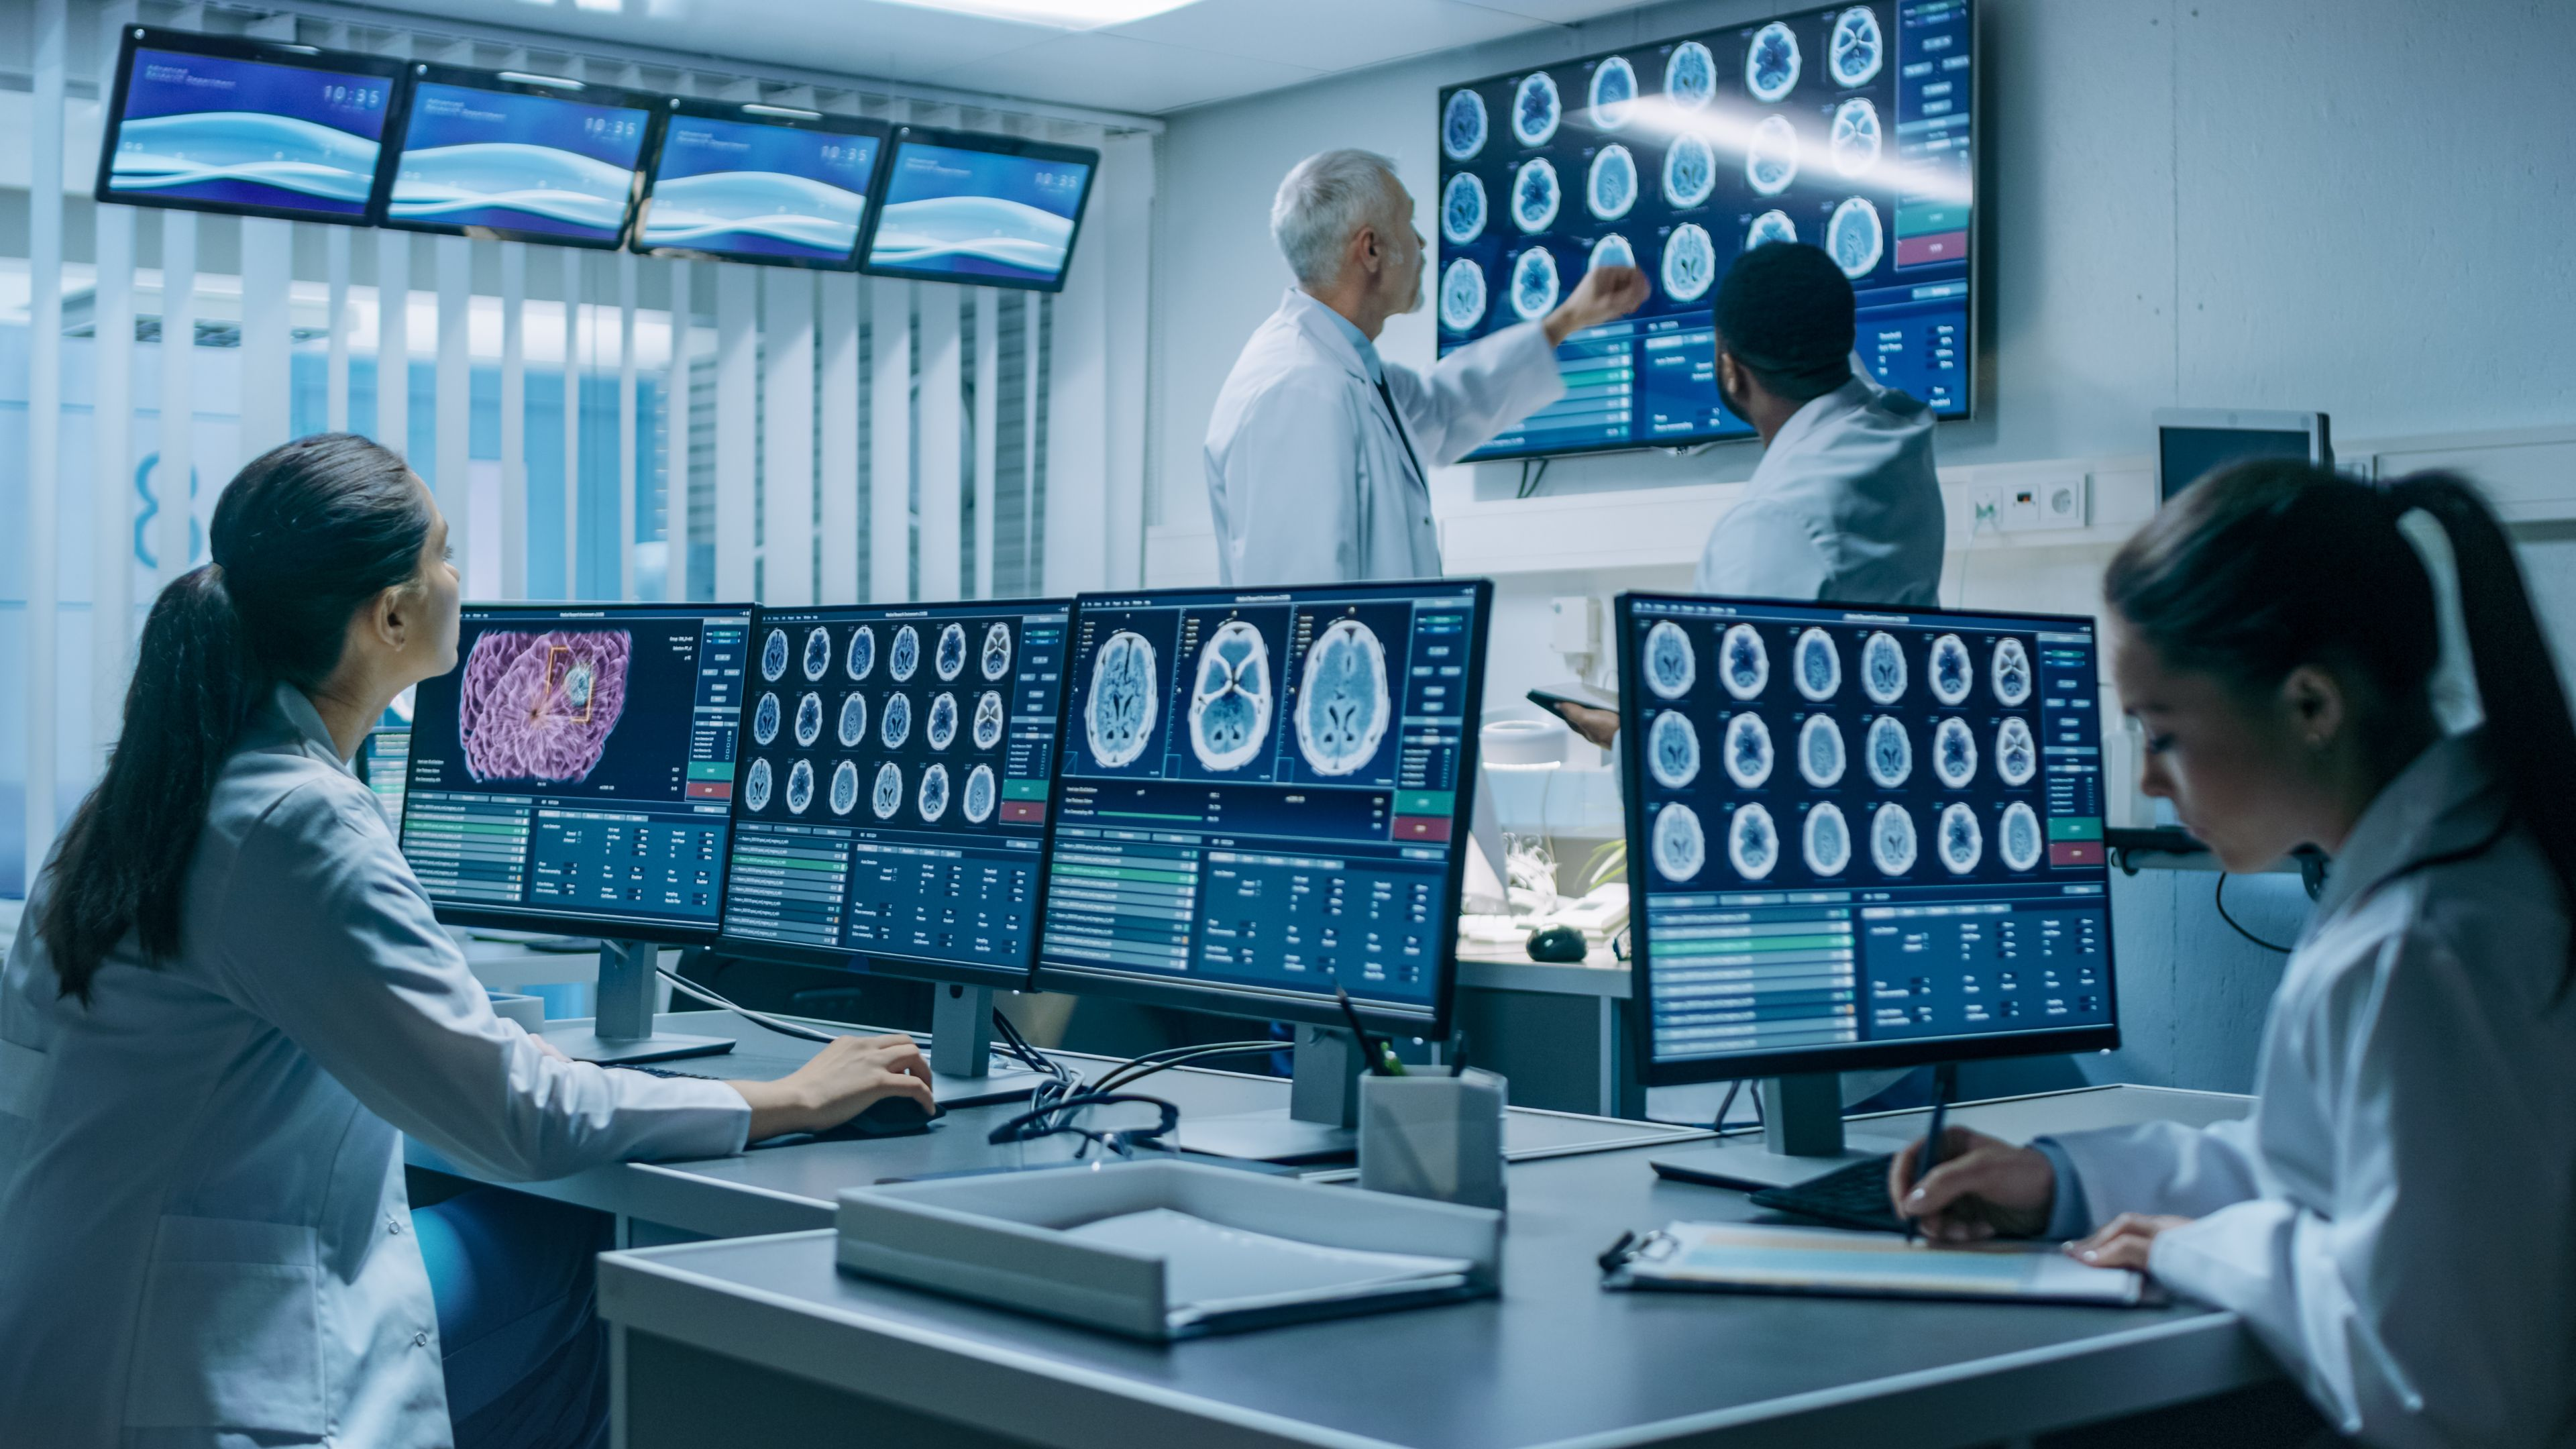 Neurologists / neuroscientists surrounded by monitors showing CT, MRI scans having discussions.